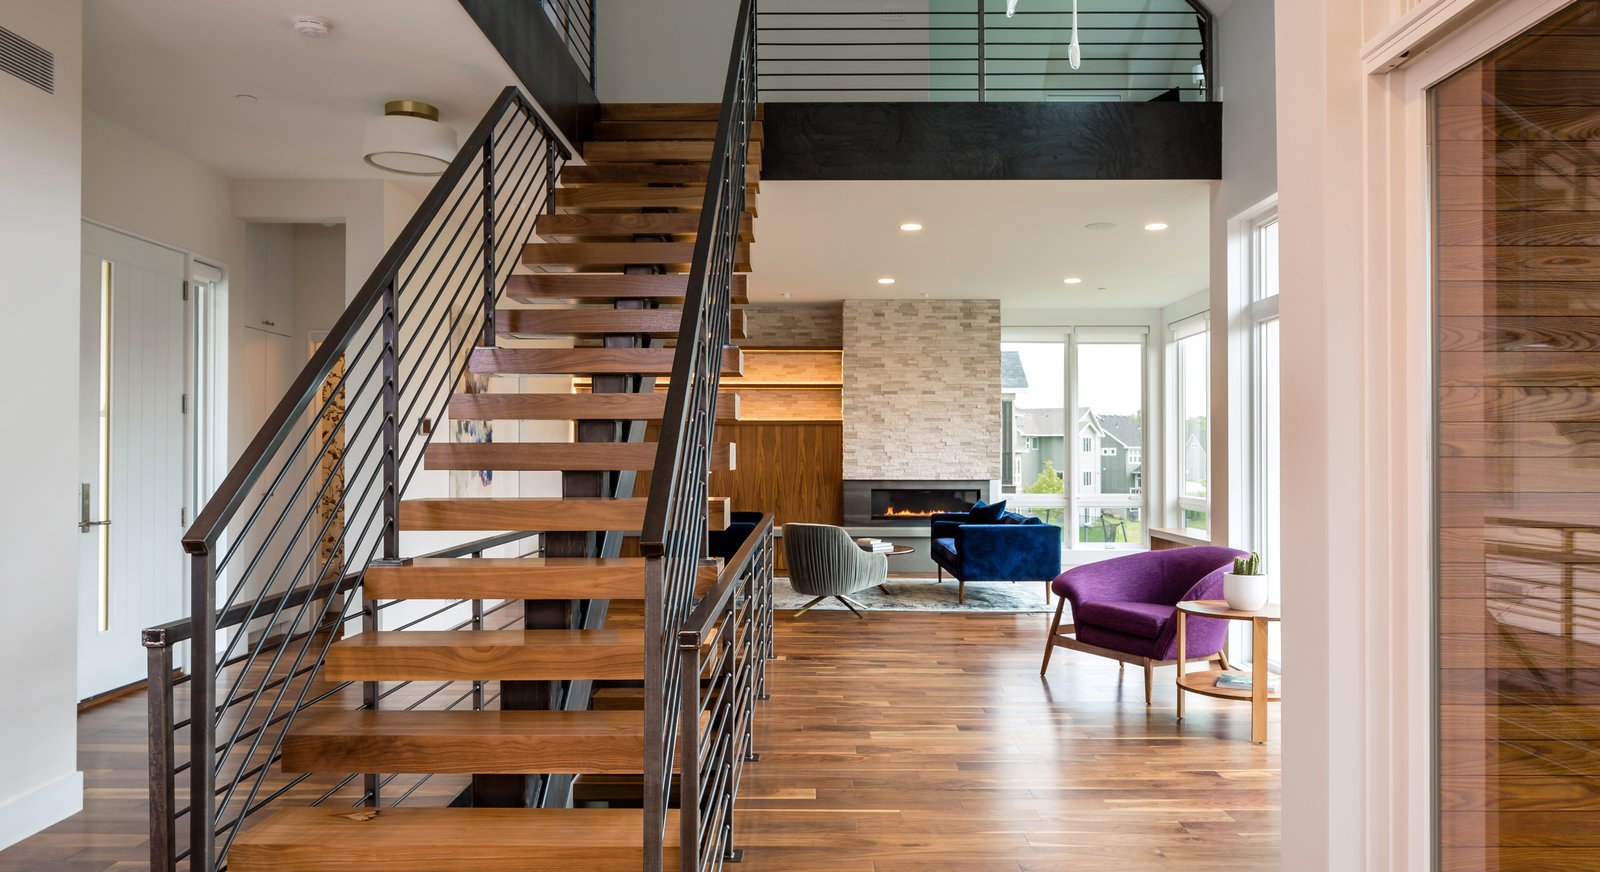 Tagged: Medium Hardwood, Chair, Staircase, Gas Burning, Sofa, Corner, Wood, Metal, and Metal.  Best Staircase Medium Hardwood Chair Photos from Credit River Residence